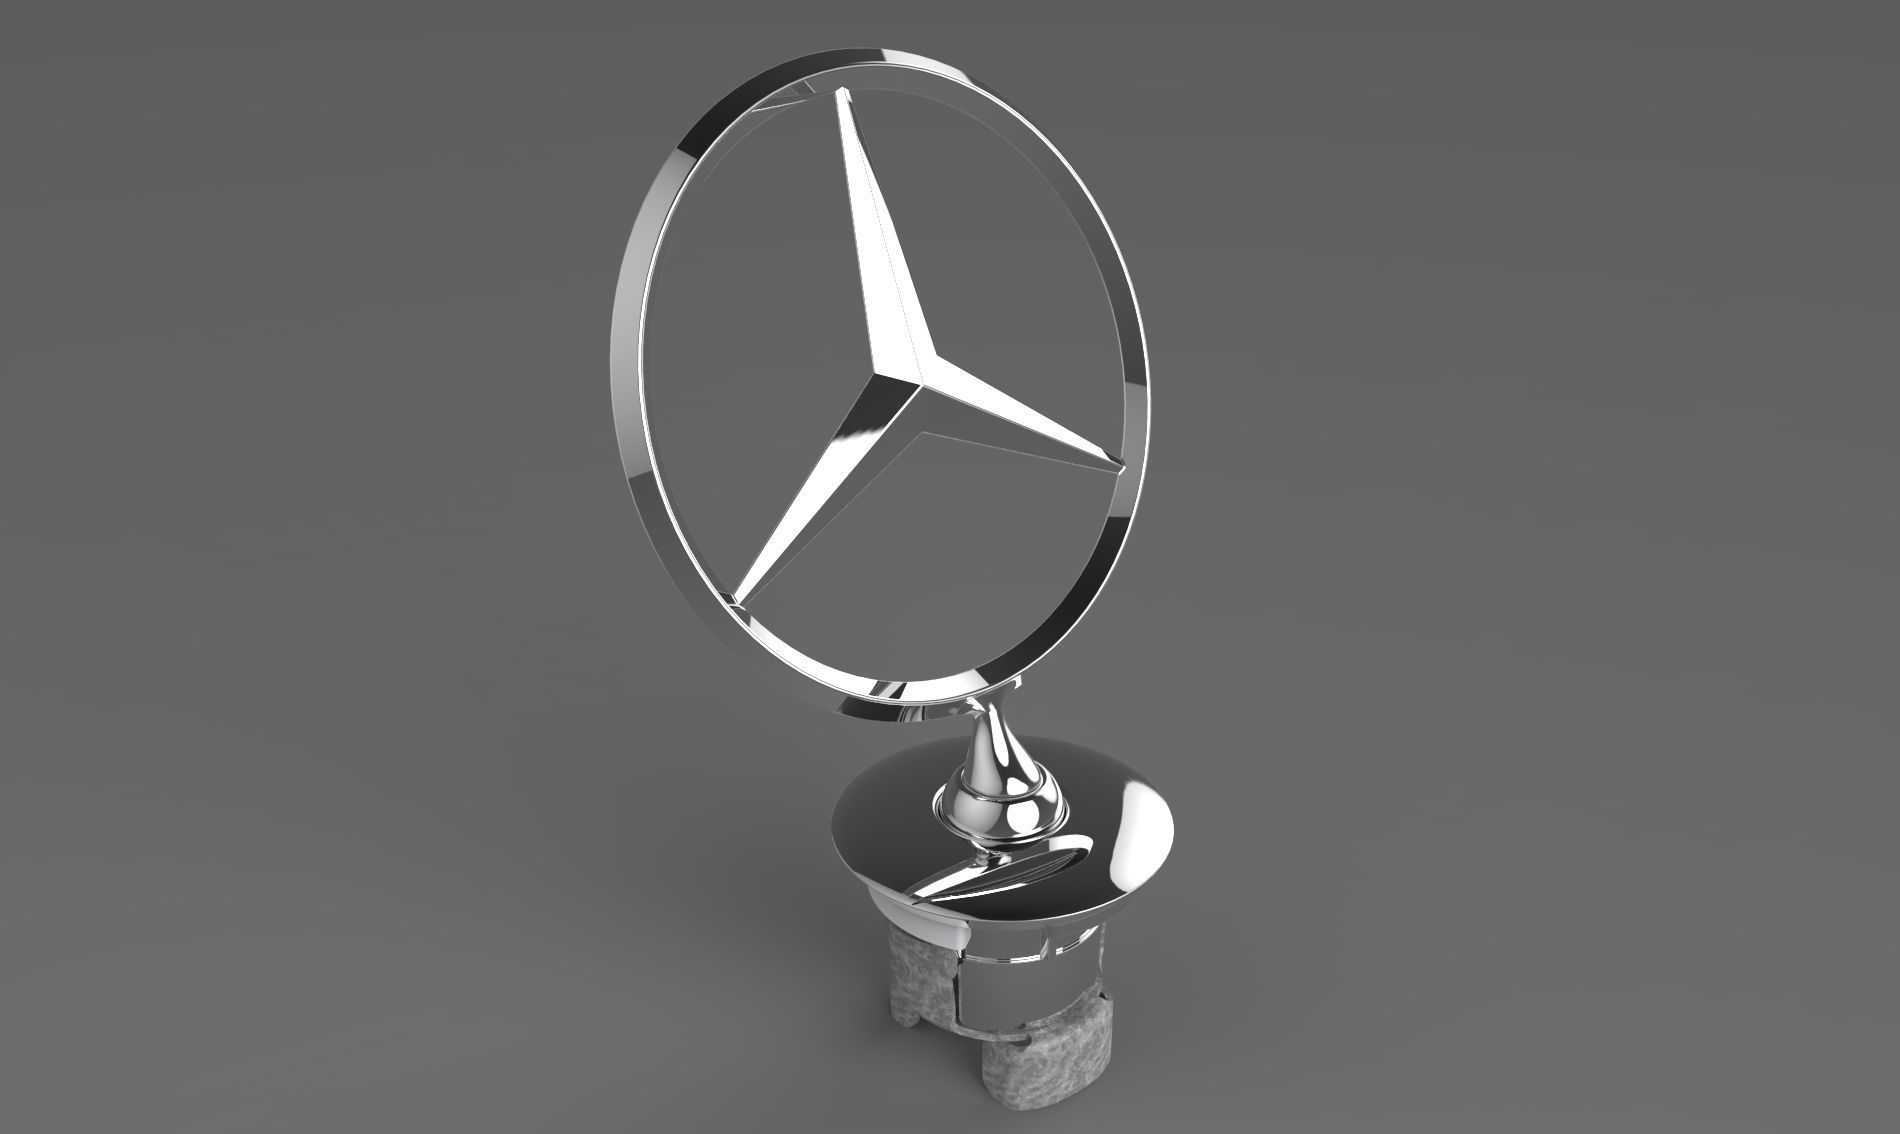 Mercedes benz star 3d model sldprt sldasm slddrw ige igs for Mercedes benz star logo